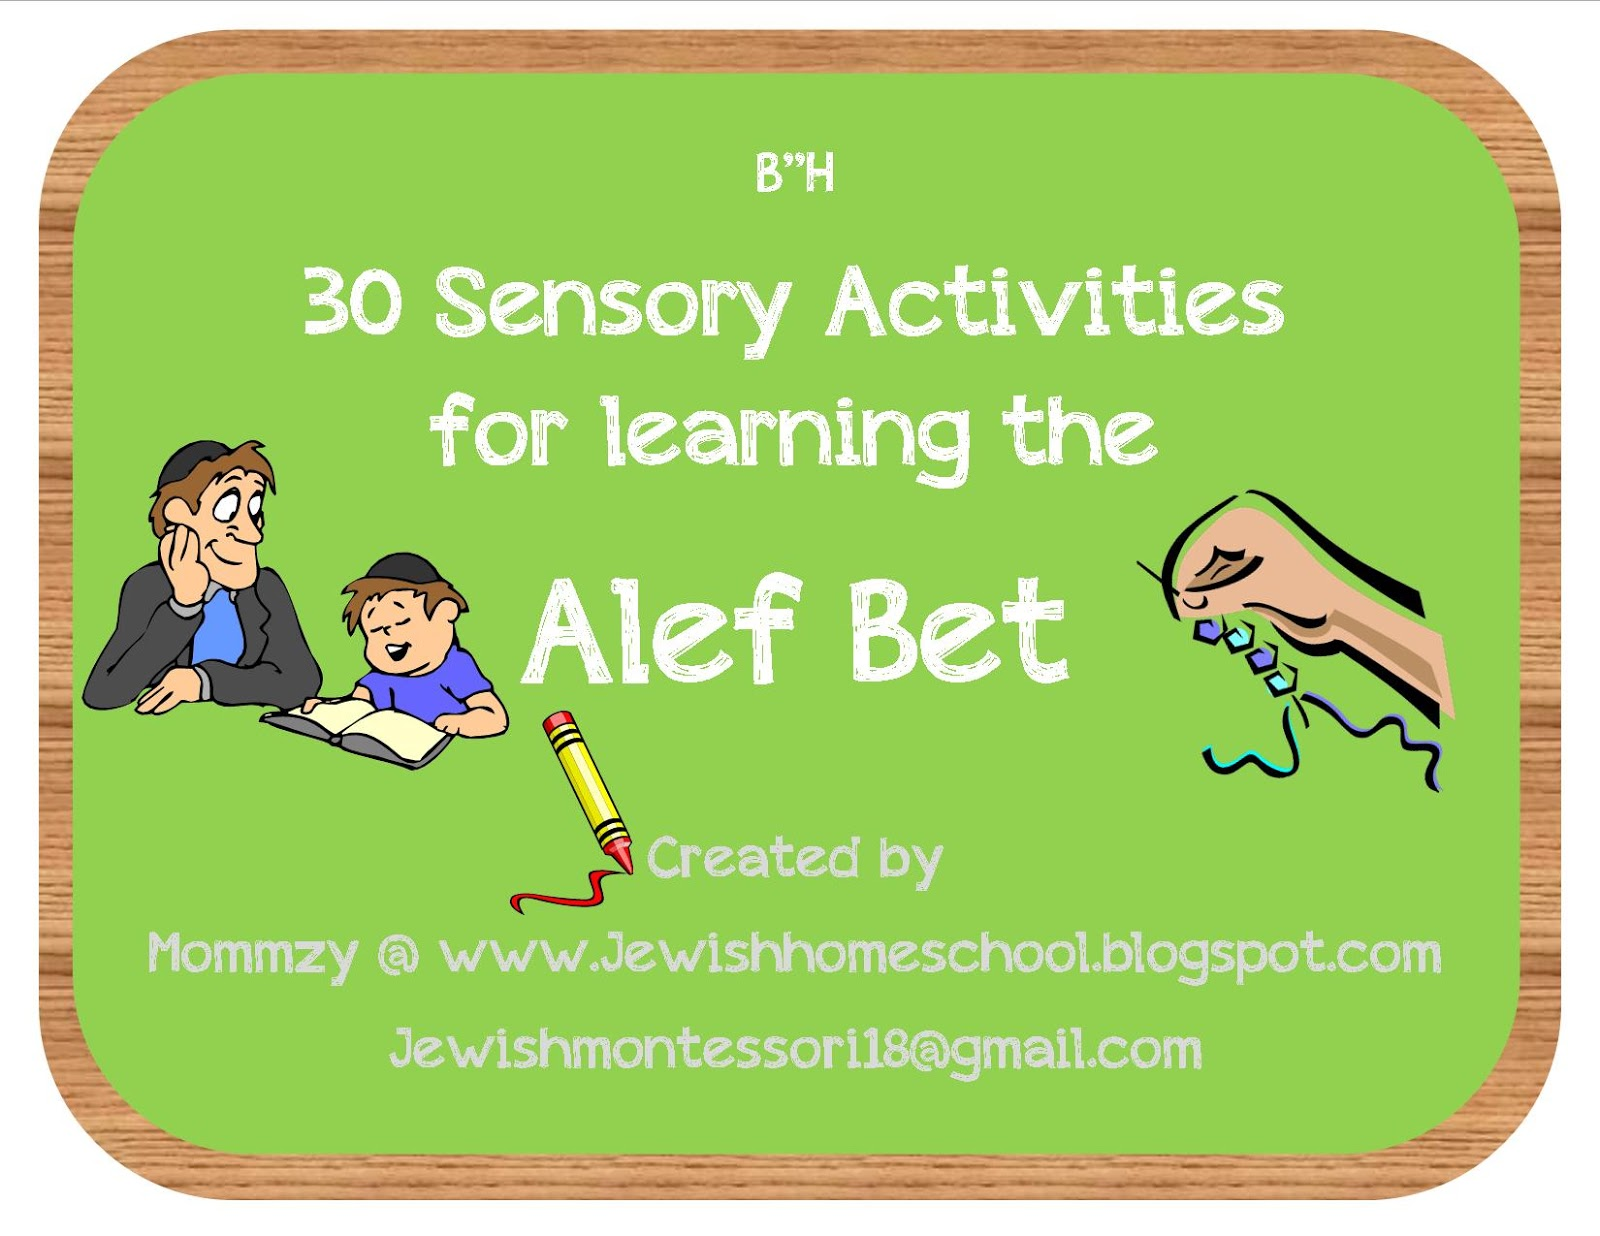 A Jewish Homeschool Blog 30 Sensory Activities For